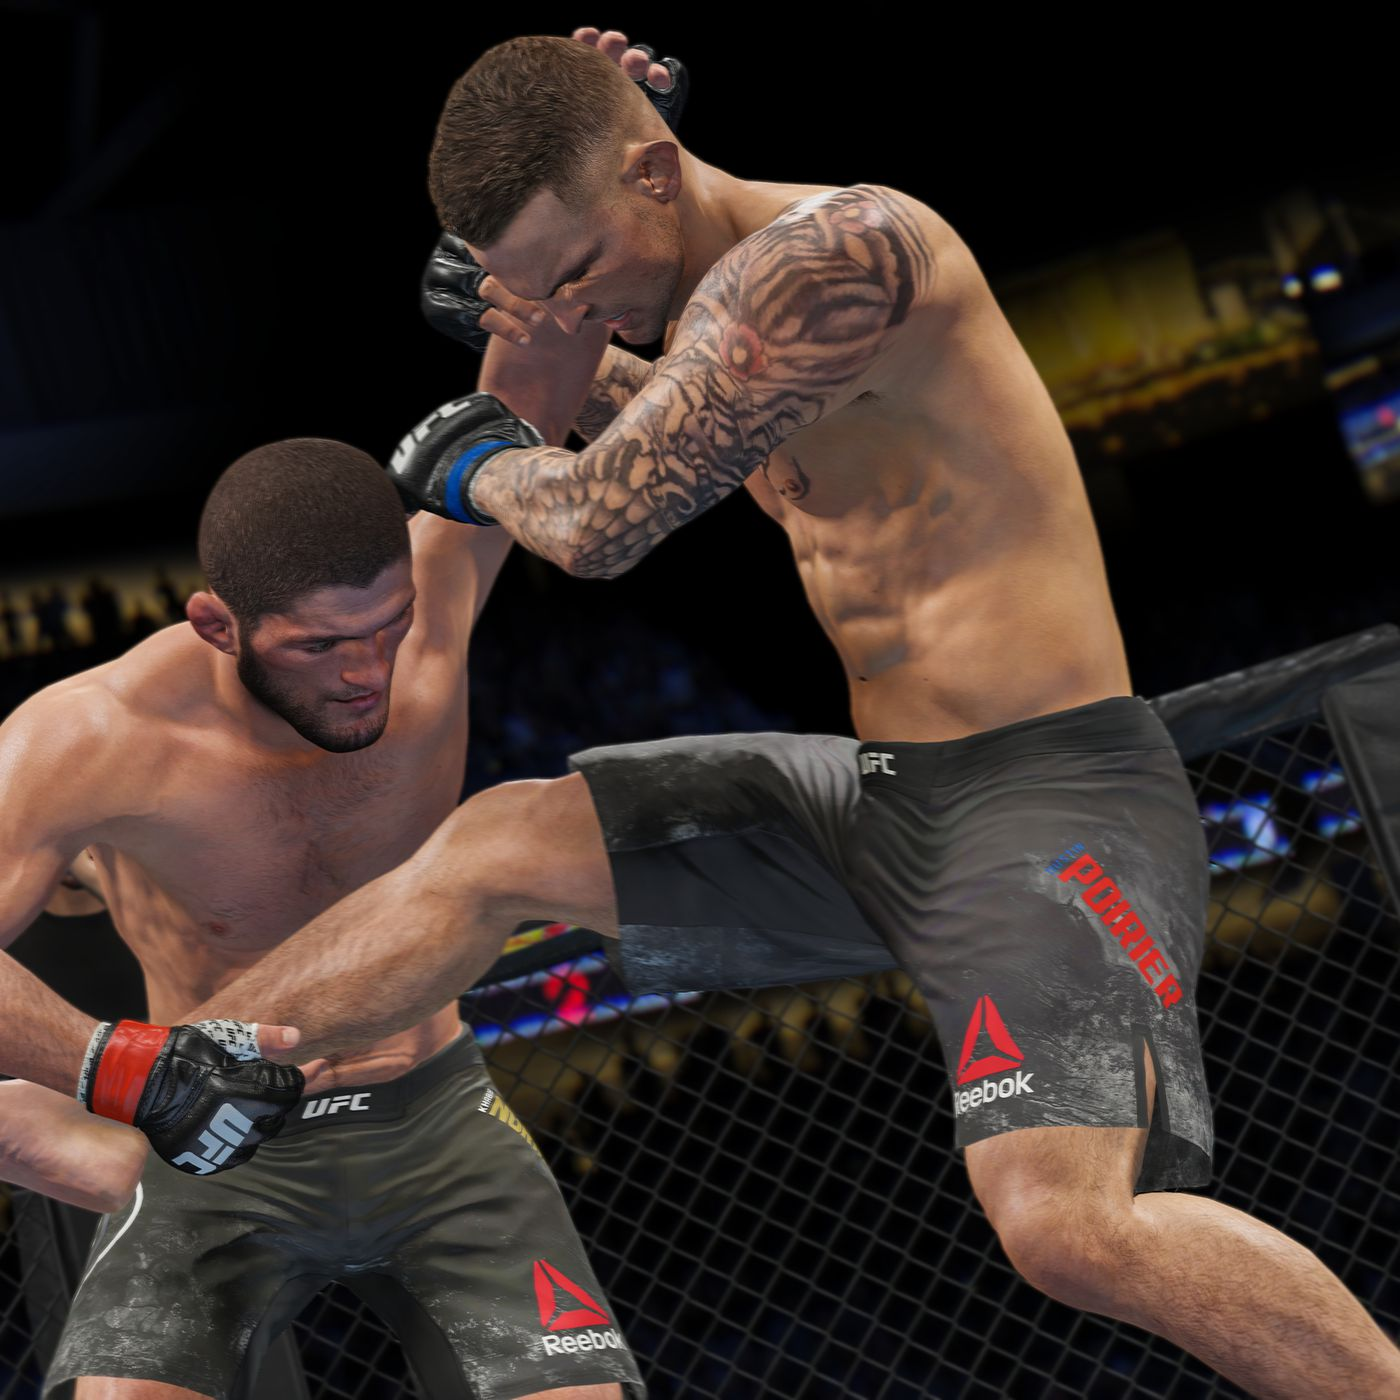 Ea Sports Ufc 4 Delivers Simpler Controls But Still Asks A Lot Of Fighters Polygon